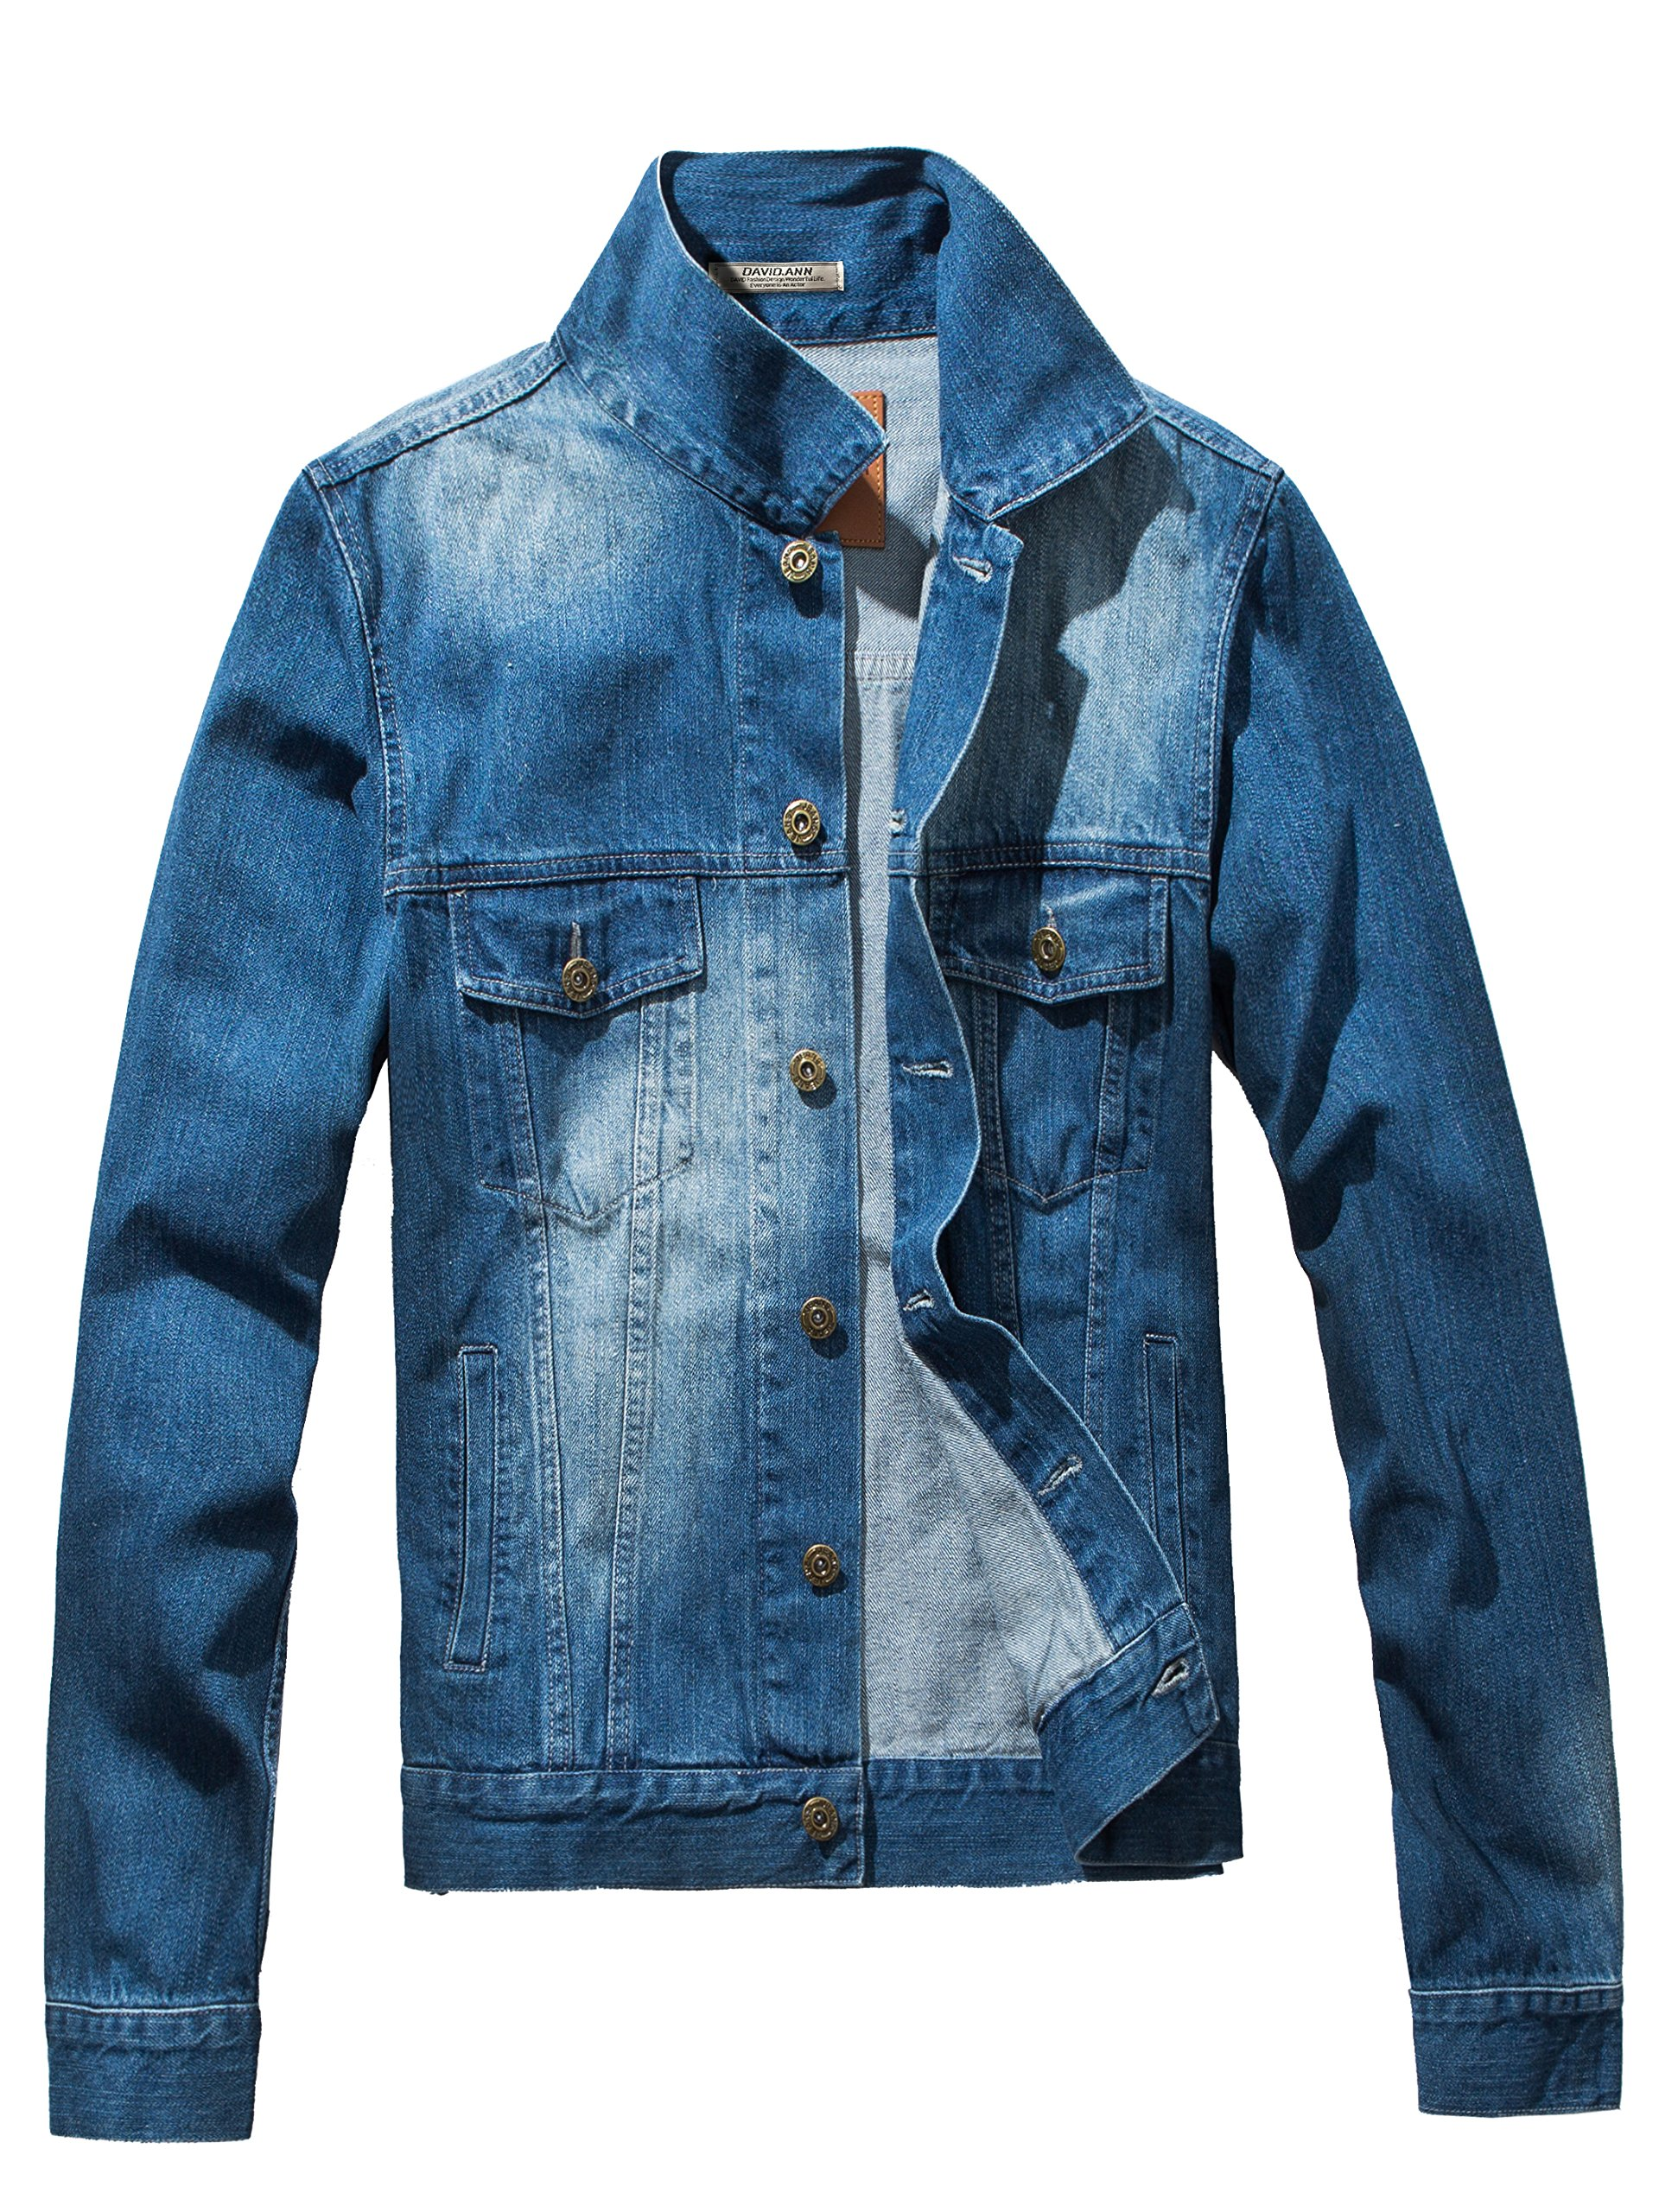 DAVID.ANN Men's Denim Jacket Slim Fit Trucker Coat,Light Blue,X-Large